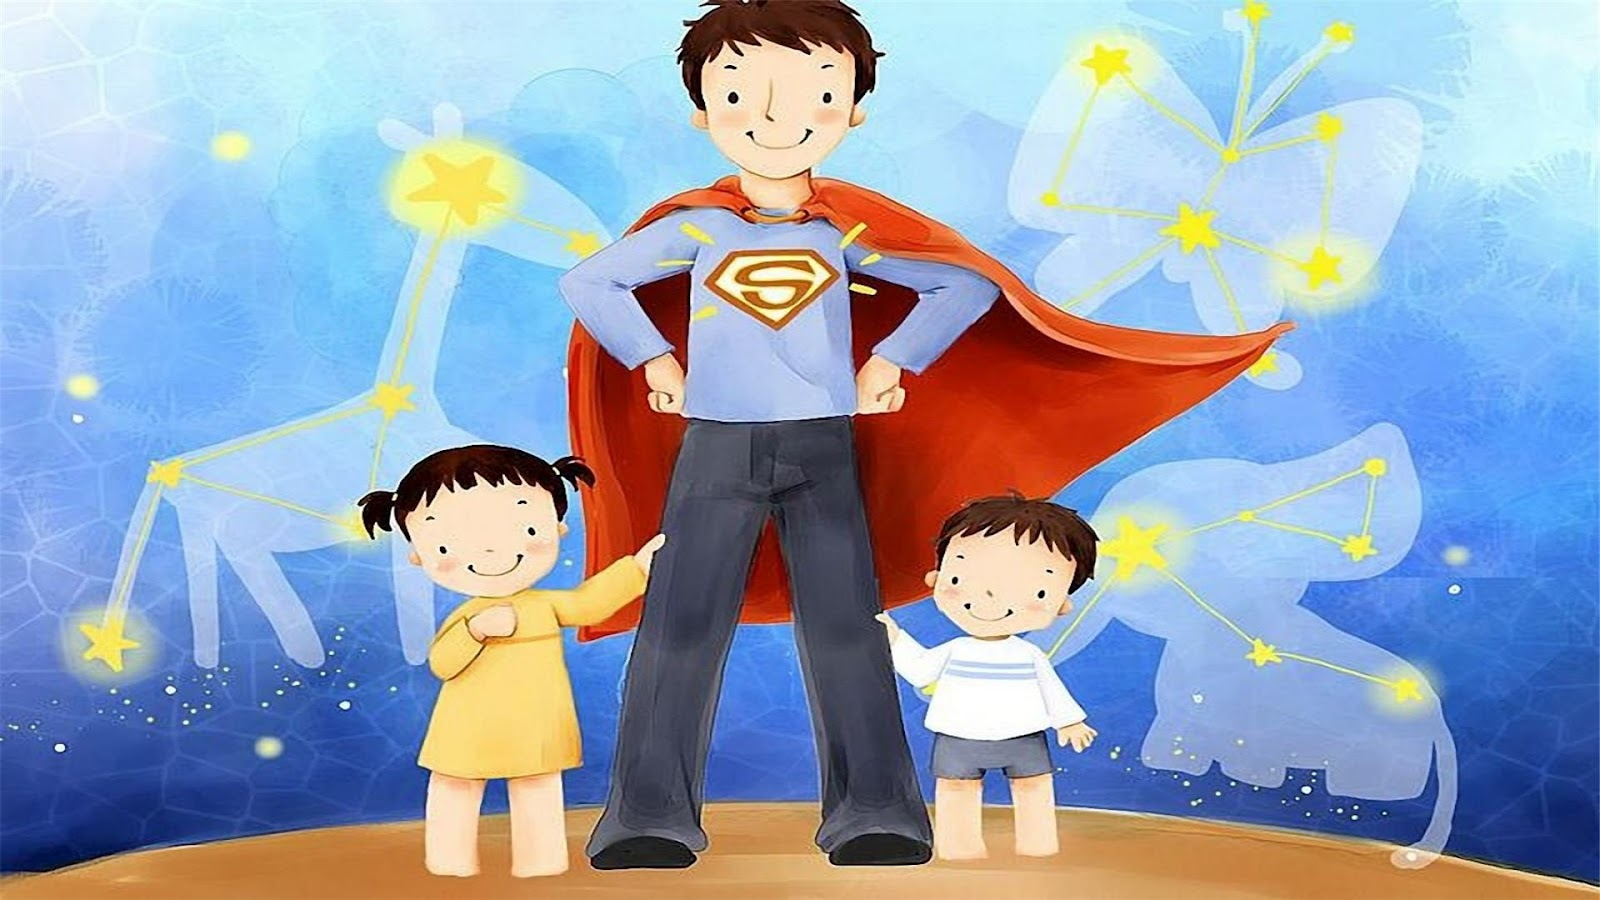 http://2.bp.blogspot.com/-ANvt0OlXIe4/T8Hn3L0gQWI/AAAAAAAADwA/llICmkZqNYs/s1600/Fathers-Day-Cartoon-Wallpaper-for-Kids.jpg